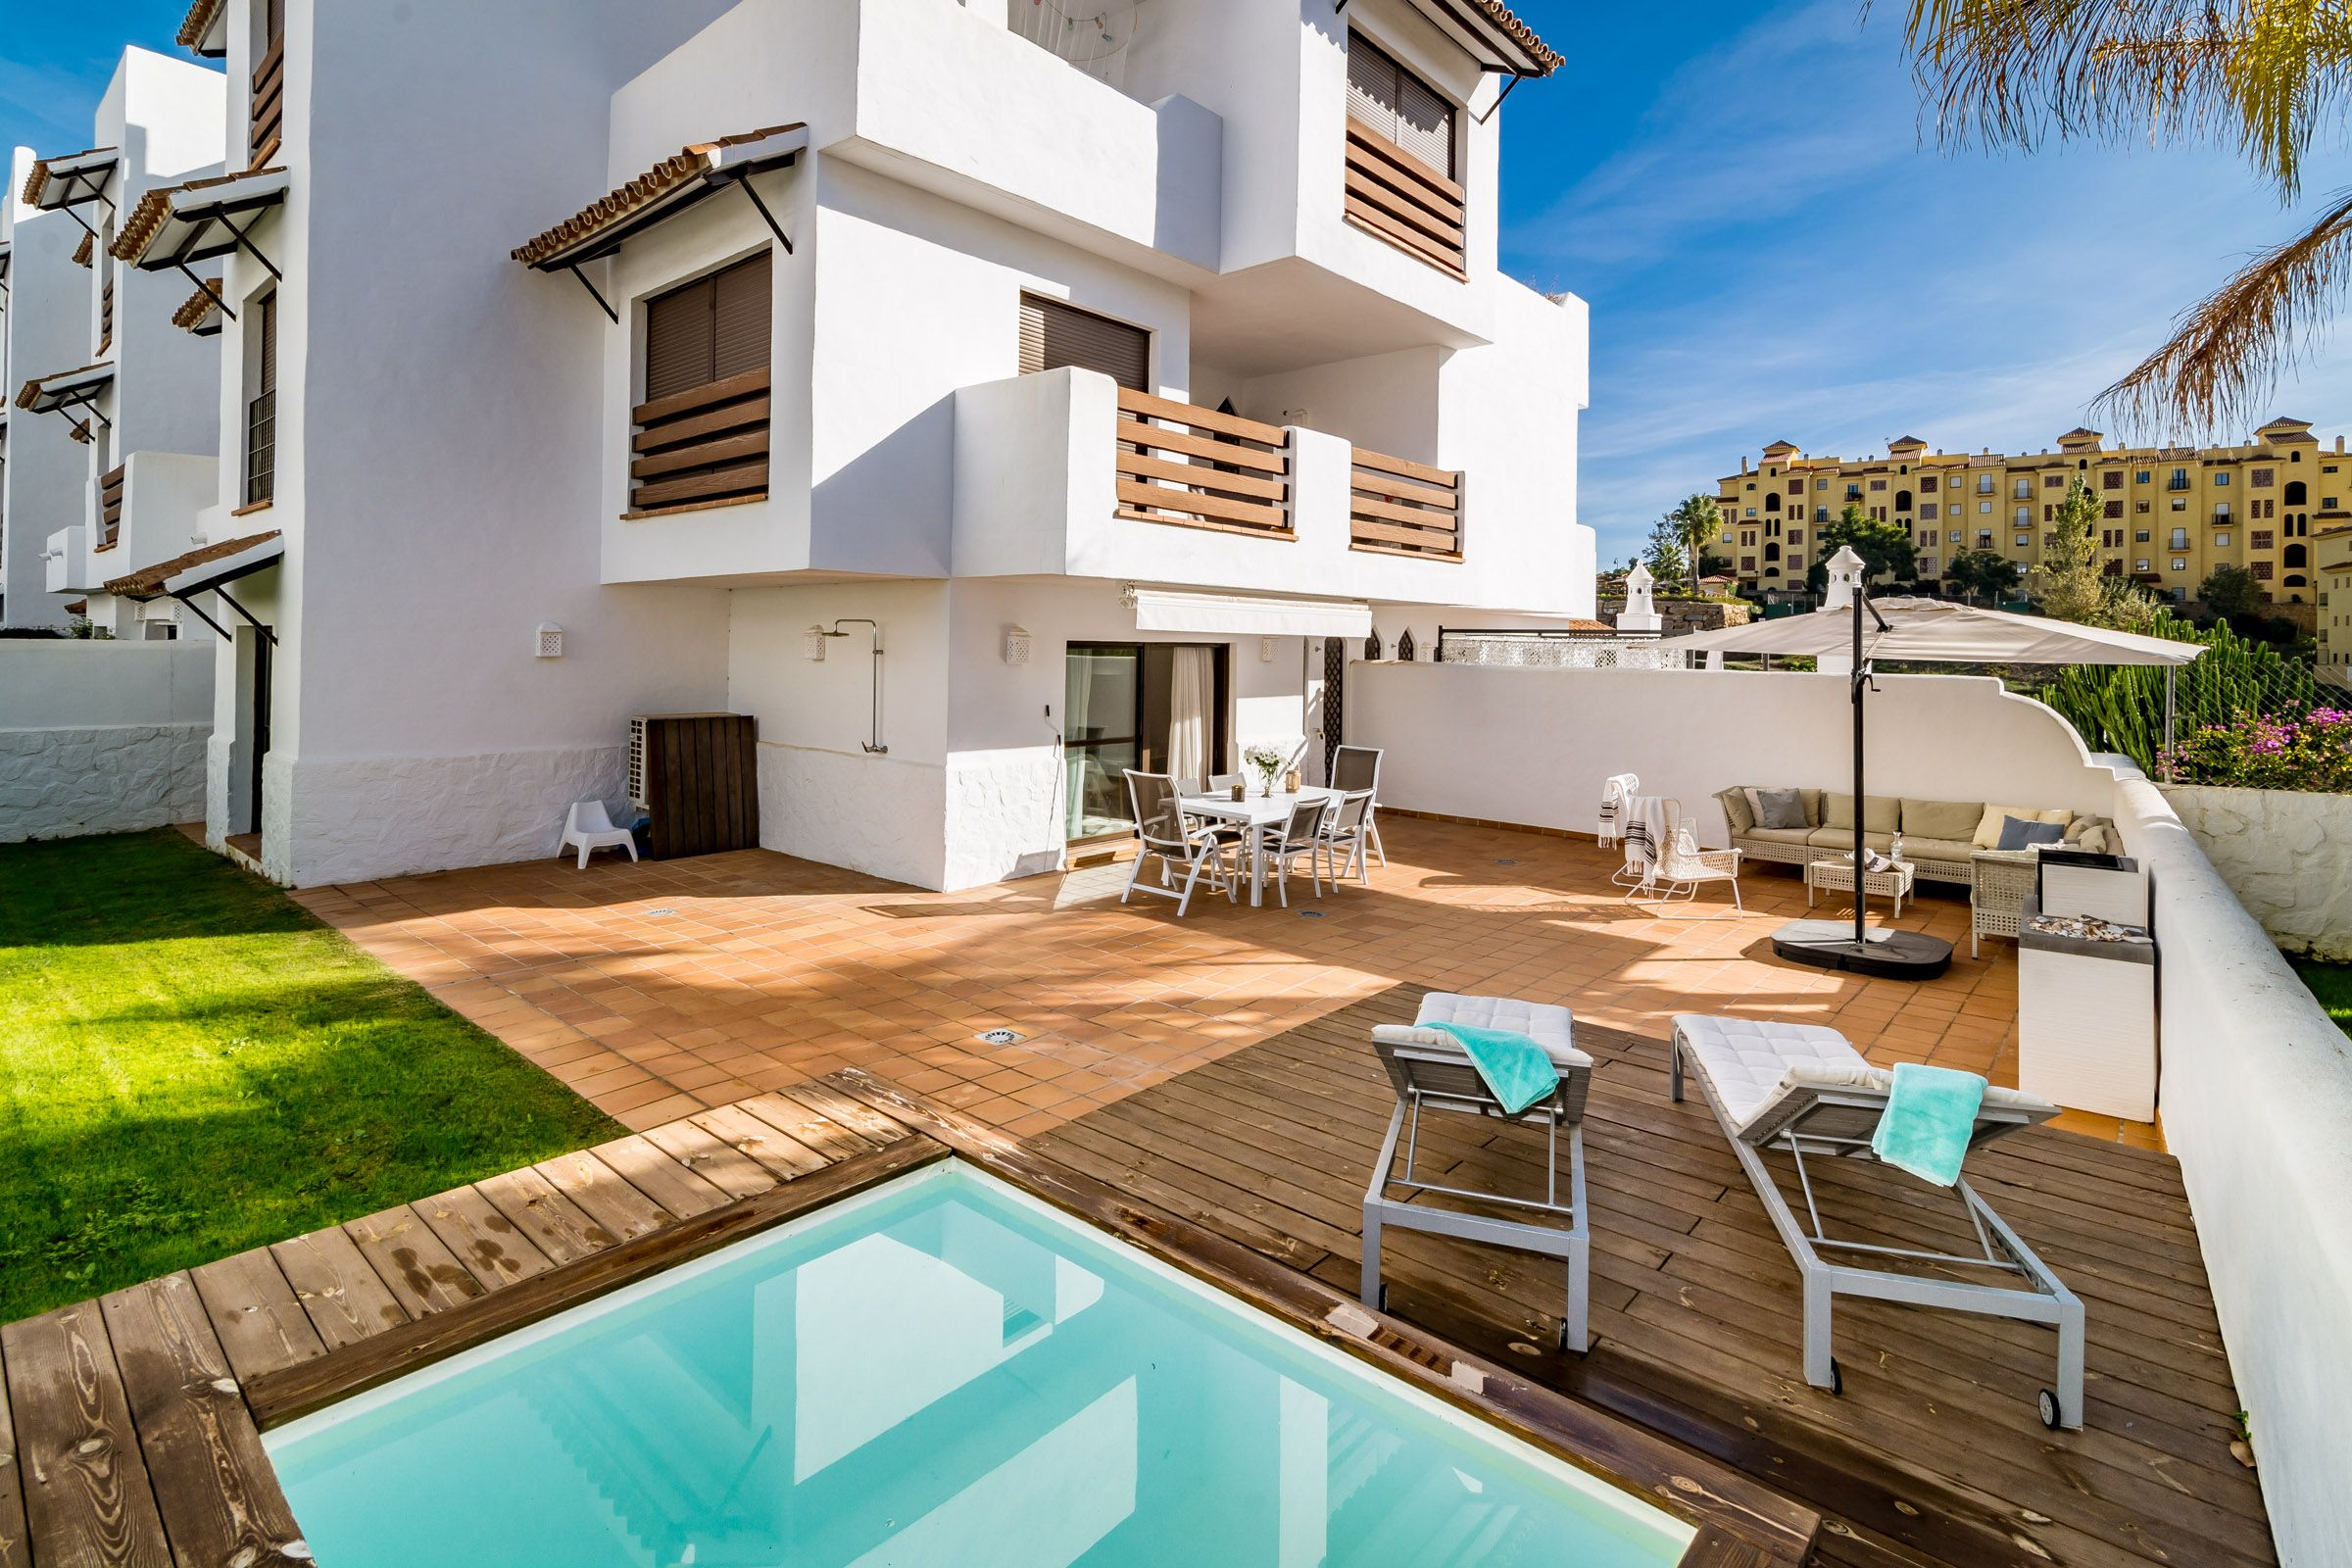 GHModern 2 bed apartment with Pool in Estepona Resina